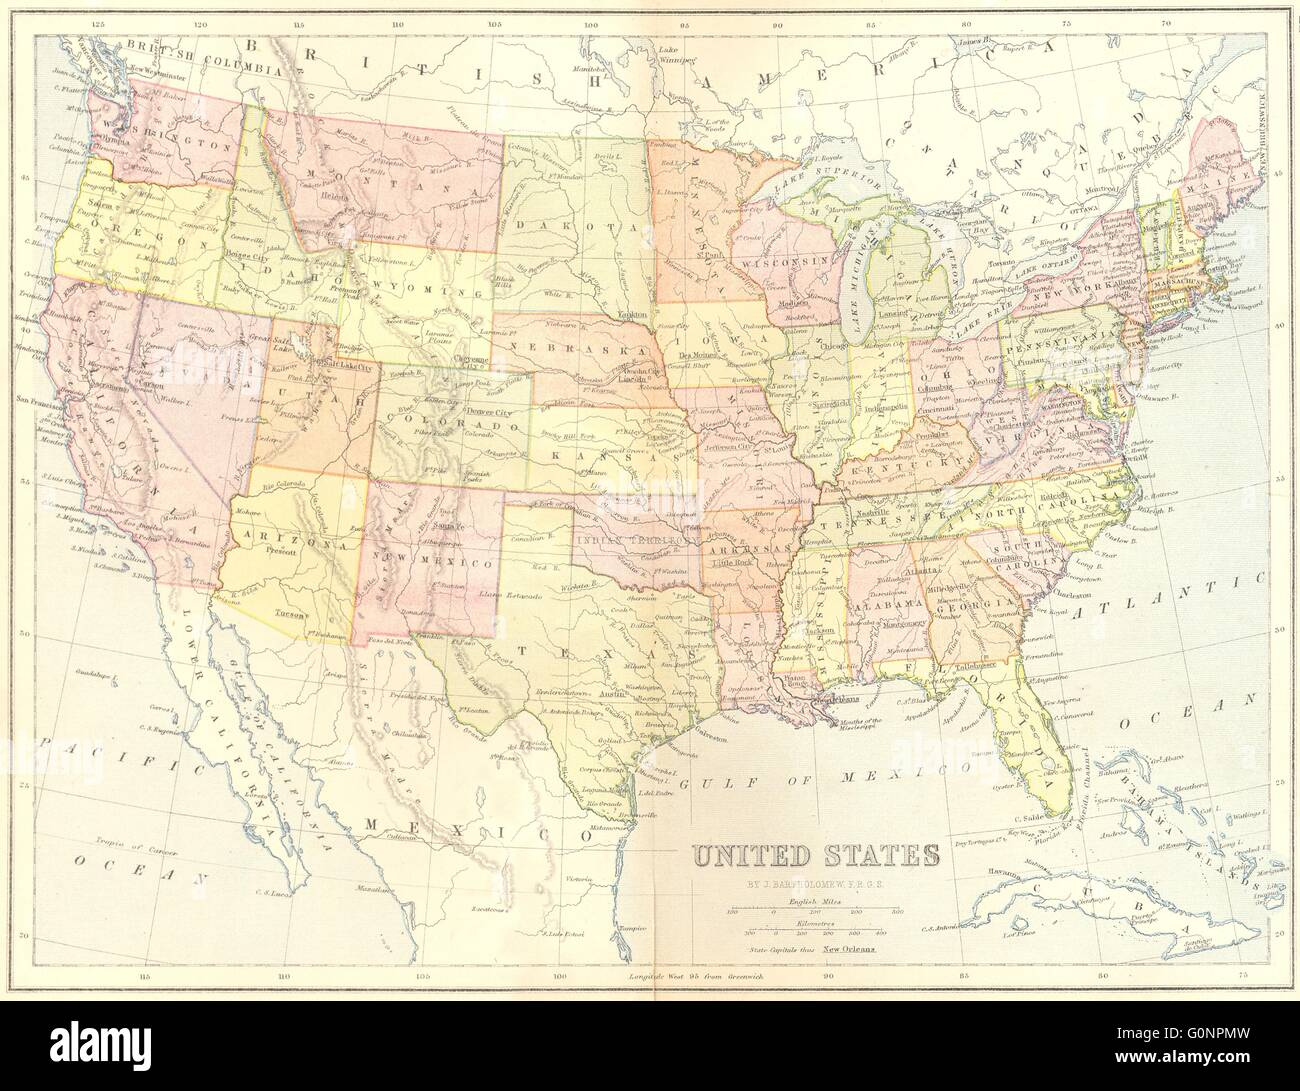 USA US 1870 antique map Stock Photo 103741033 Alamy